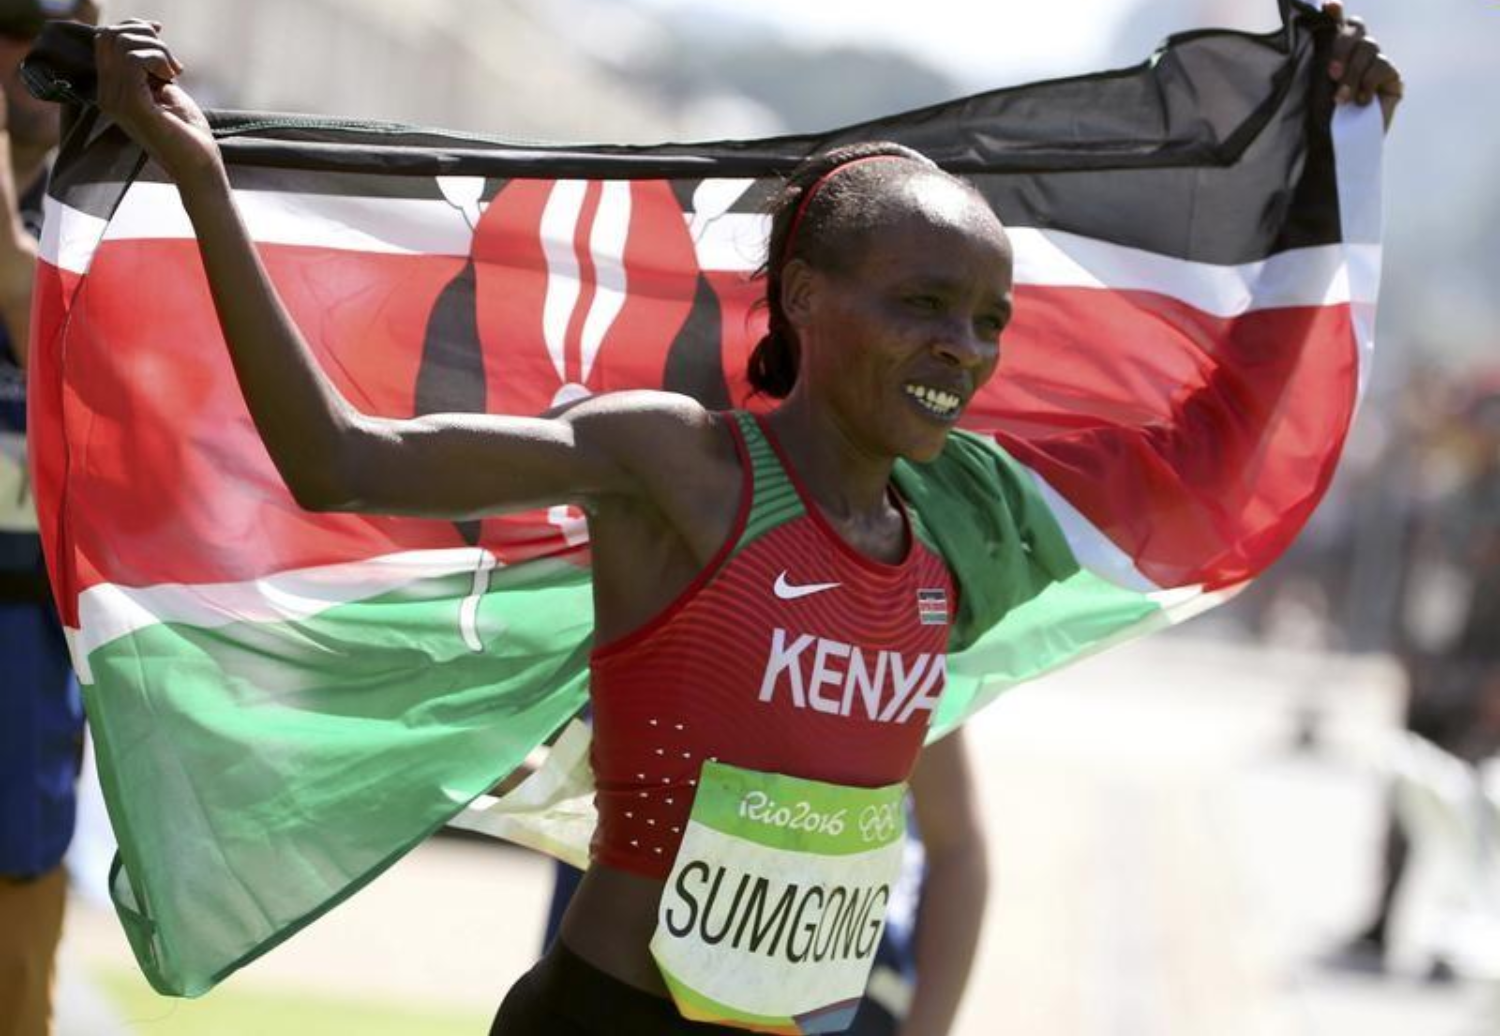 Kenya's Sumgong has doping ban doubled to eight years